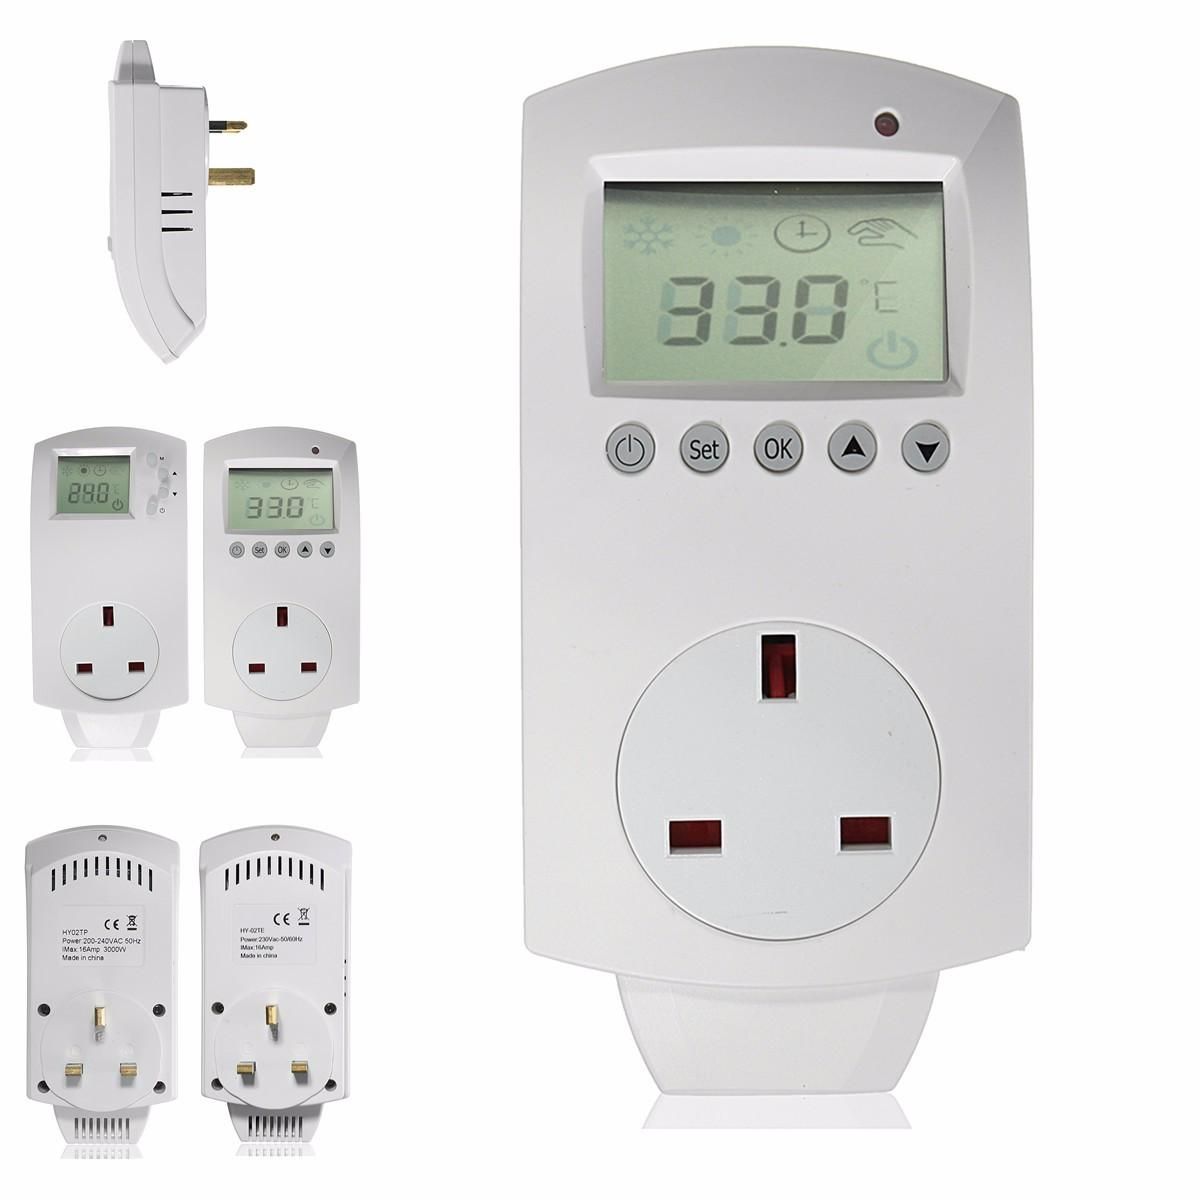 Heating Thermostat Electric Digital Temperature Controller Programmable Heating Thermostat